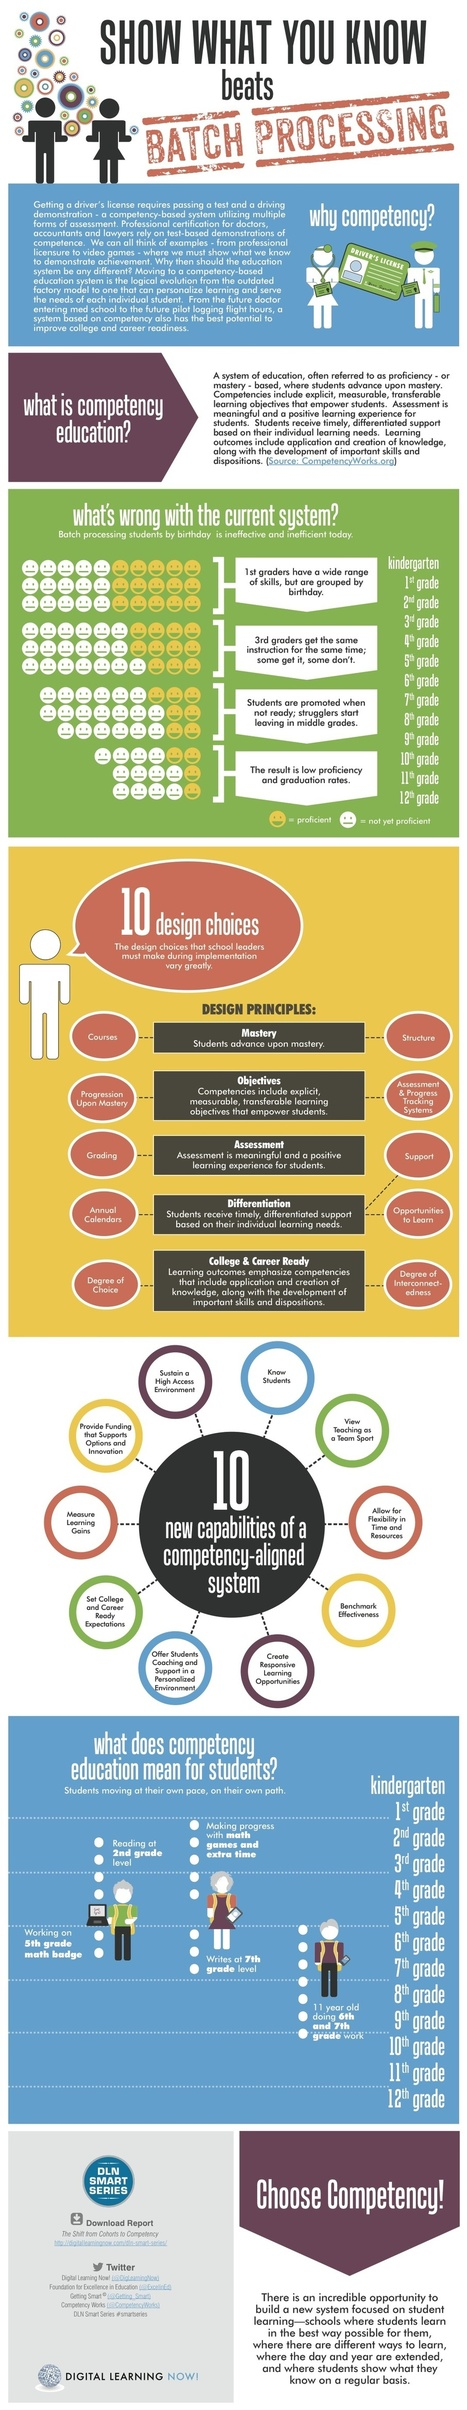 Competency-Education-Infographic | Web 2.0 for juandoming | Scoop.it